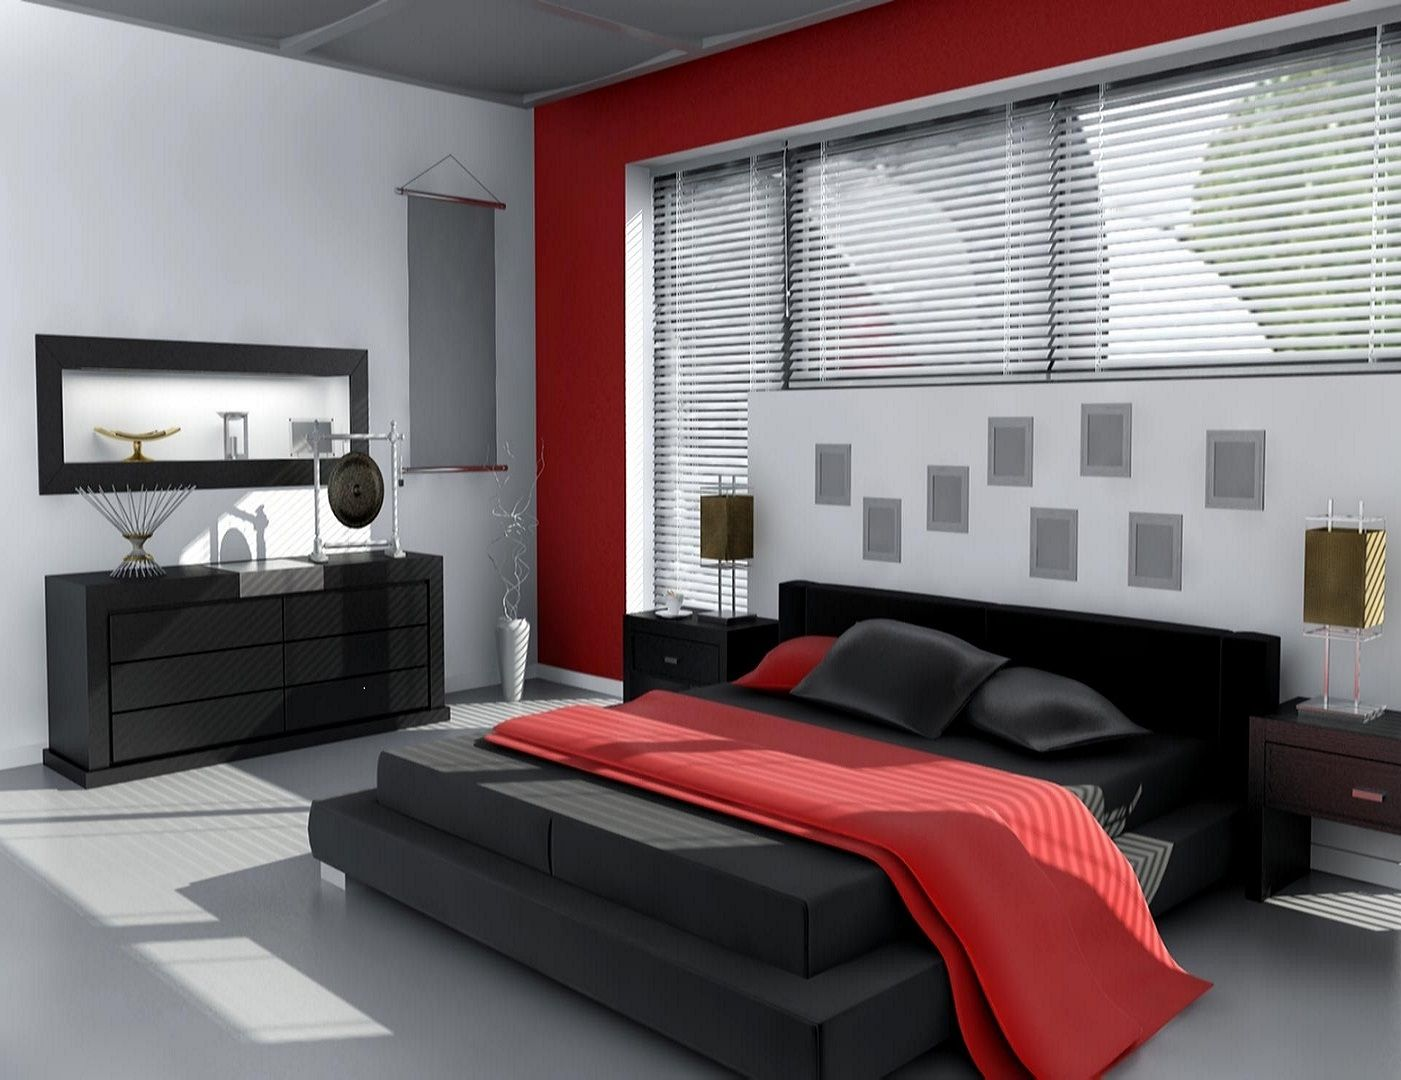 Charming Red White Black Bedroom Ideas Part - 1: Red White And Black Bedroom Ideas - If You Need To Make Your Bedroom Feel  Broad White Bedroom Furniture Is An Excellent Optio